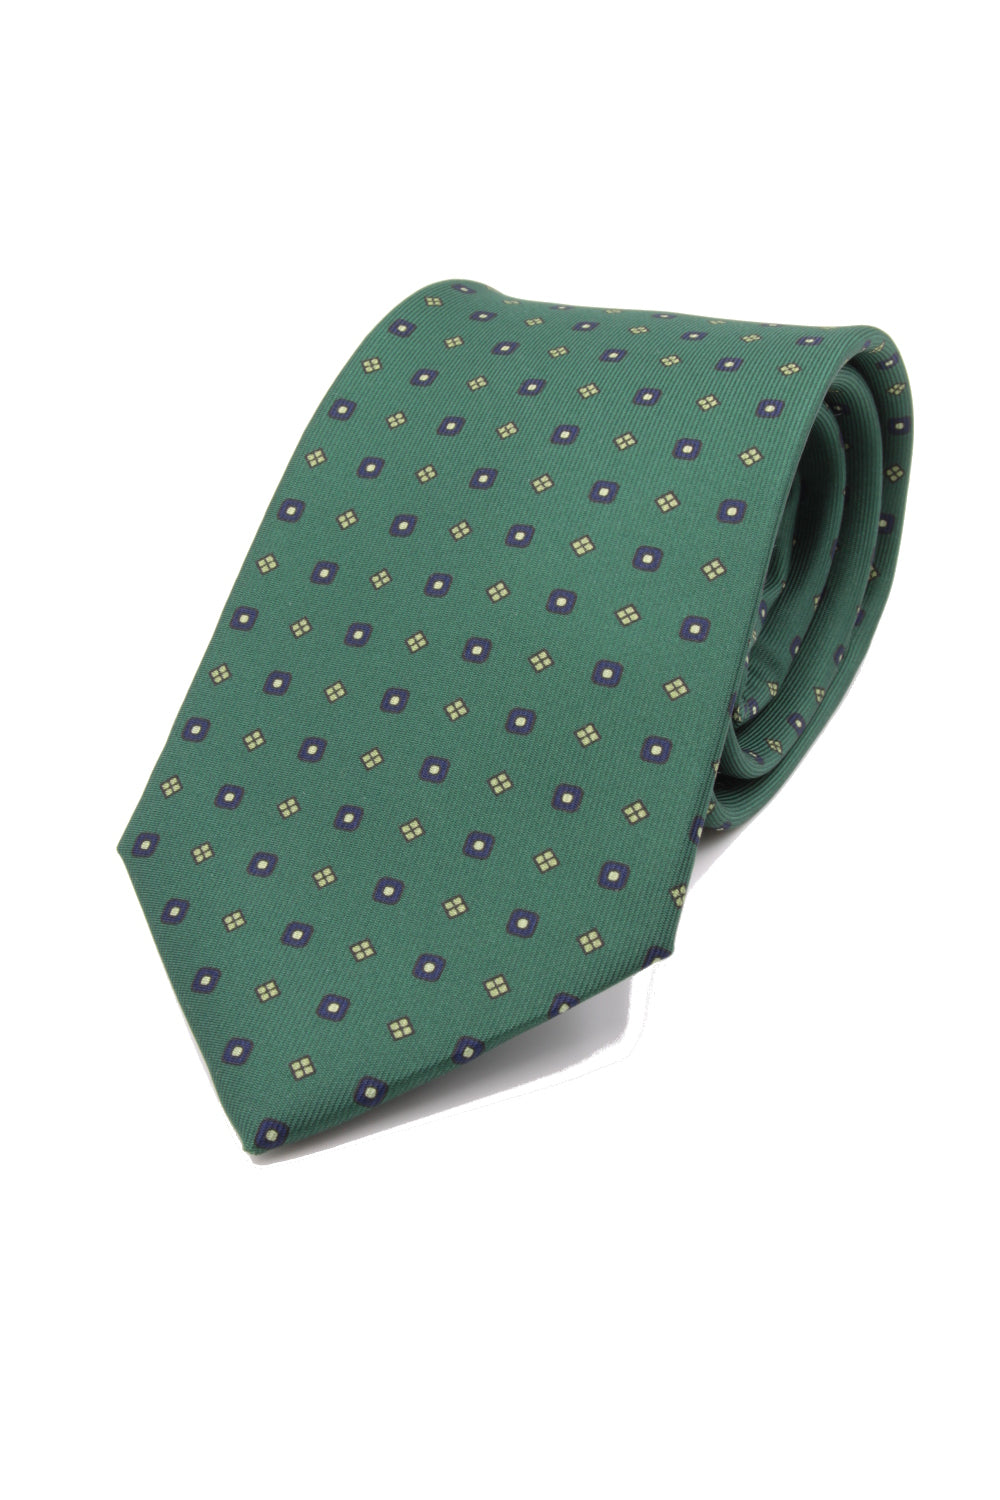 drake's Light green, small navy and green medallion tie